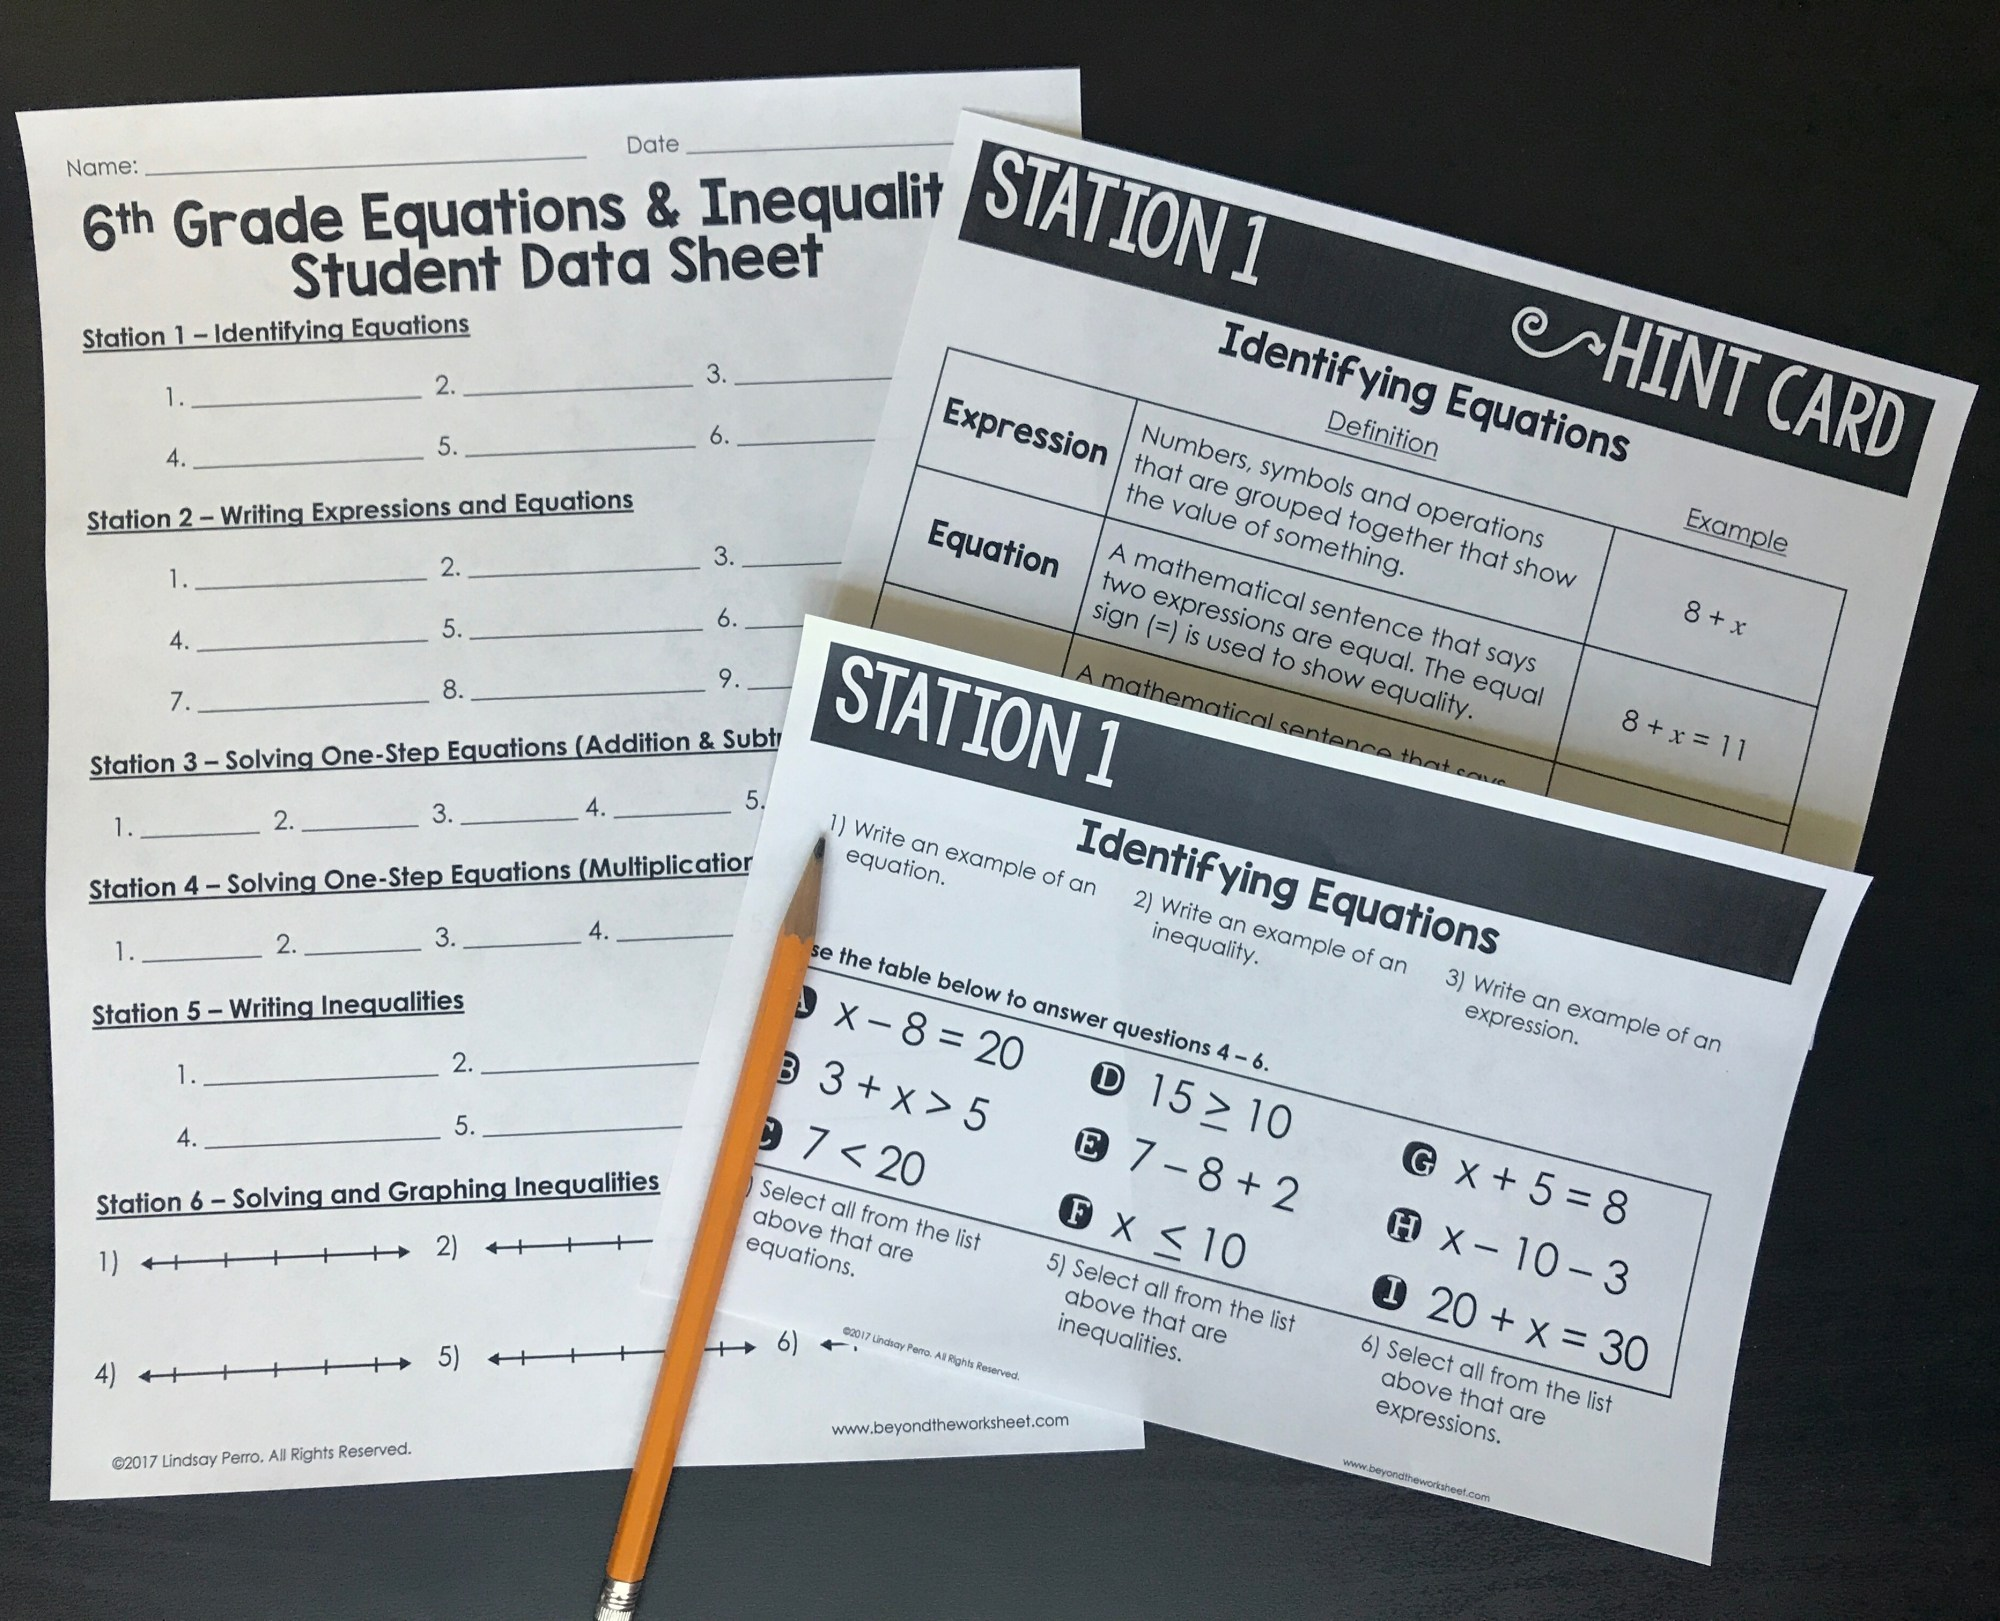 hight resolution of 6th Grade Equations and Inequalities Stations   Store - Lindsay Perro